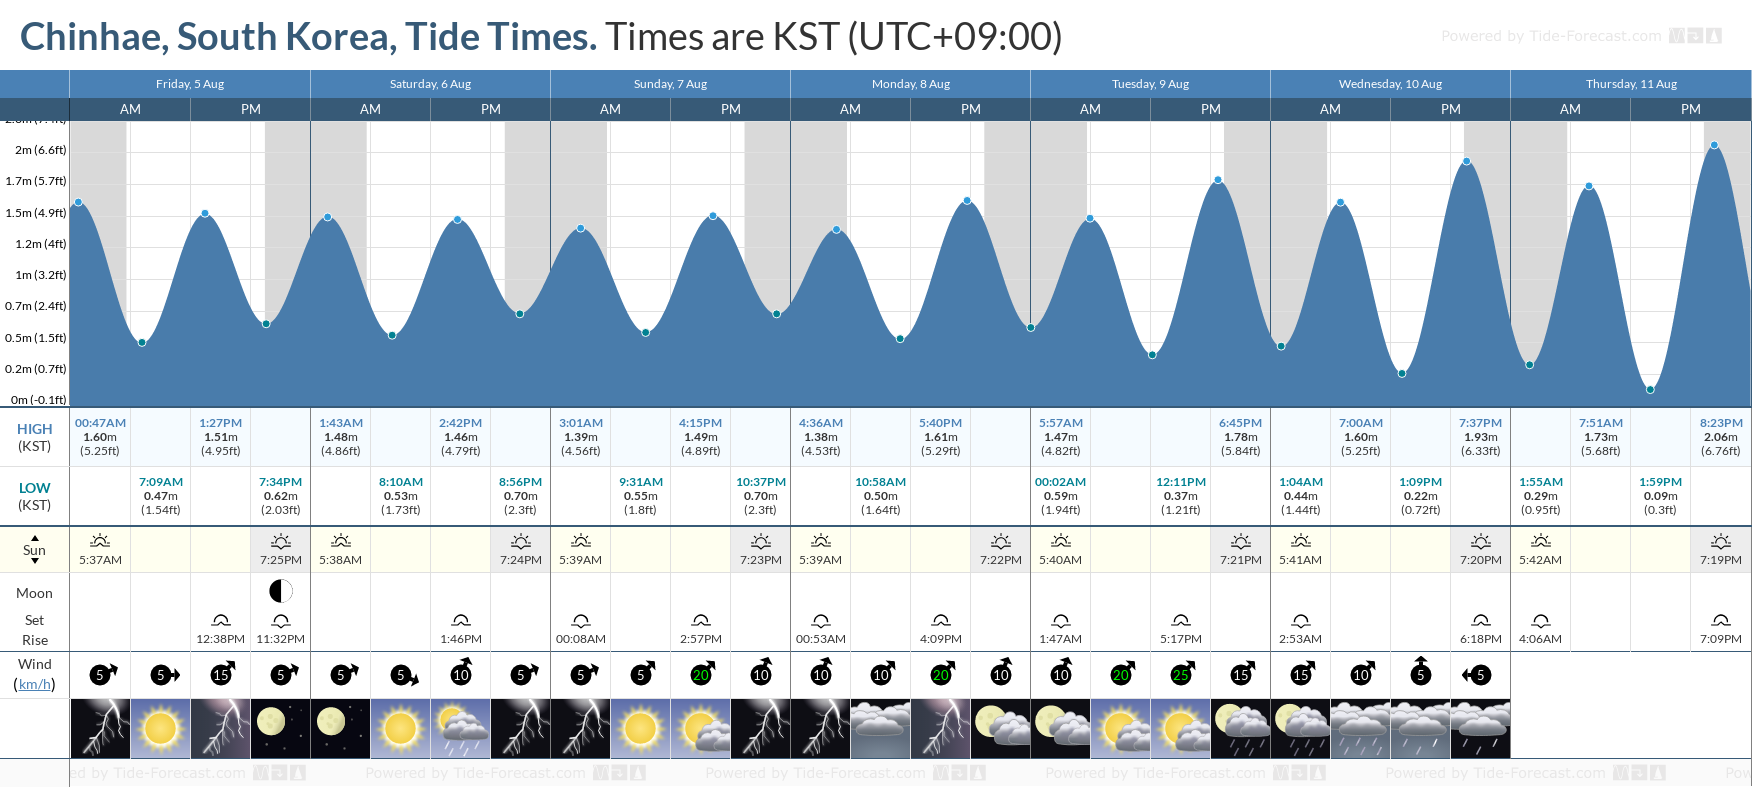 Chinhae, South Korea Tide Chart including high and low tide tide times for the next 7 days